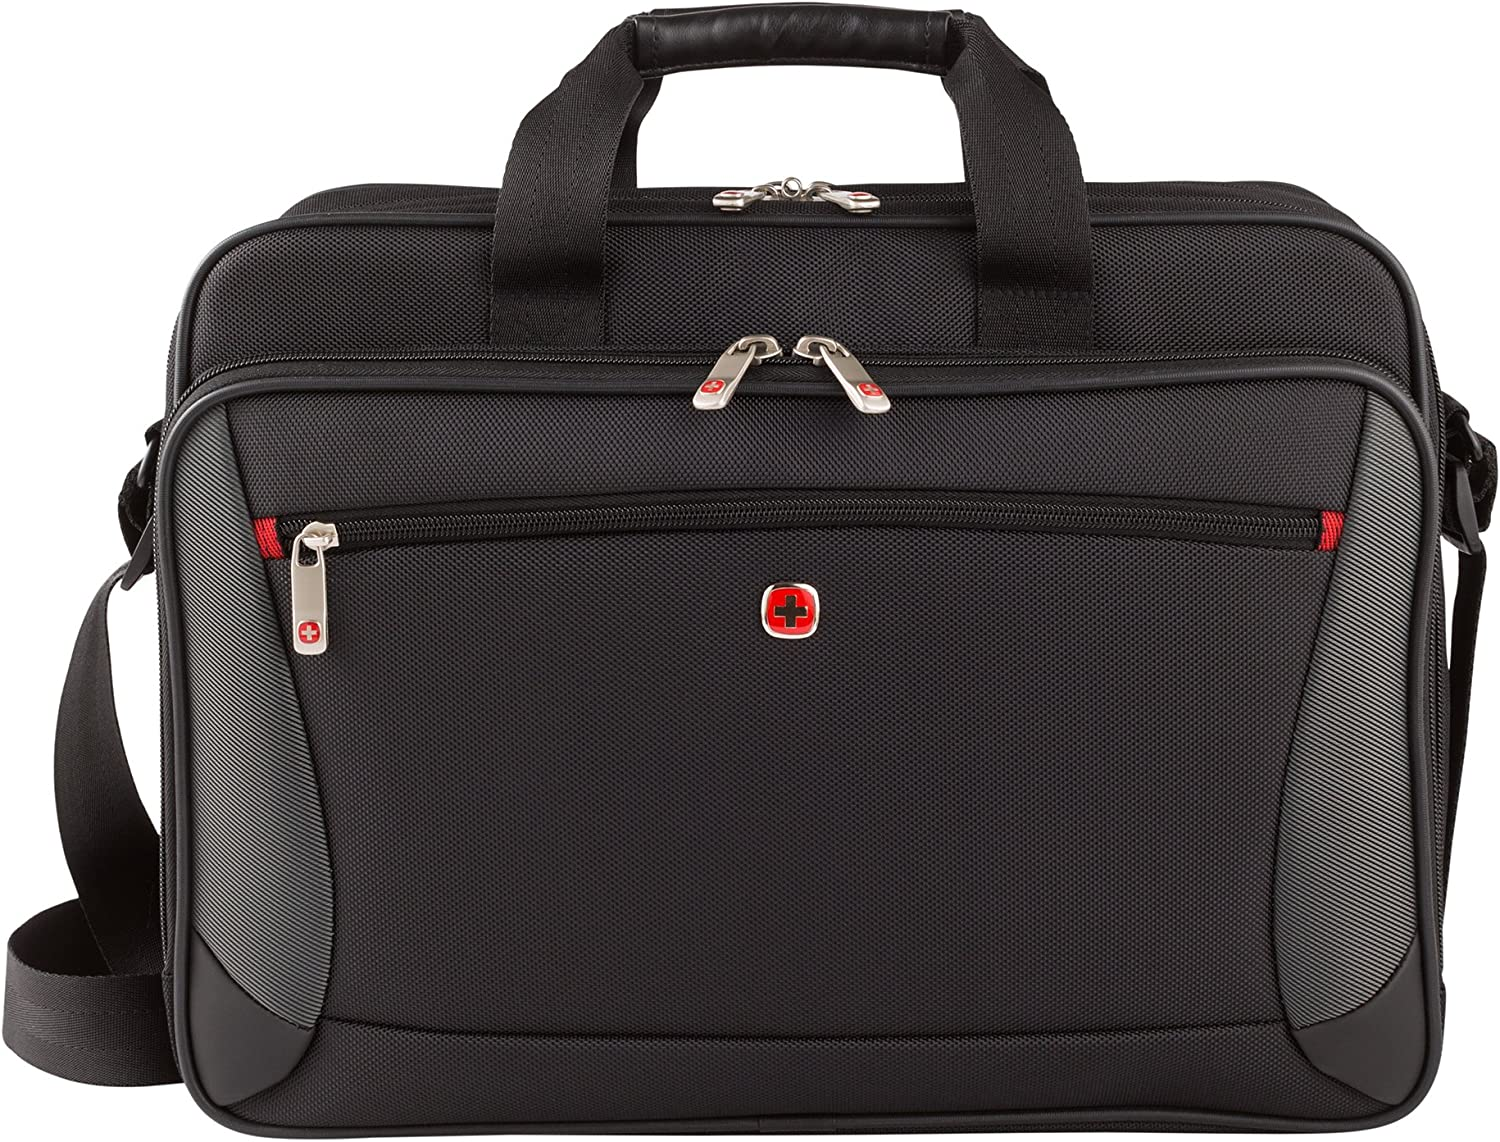 Wenger Luggage Mainframe 15.6